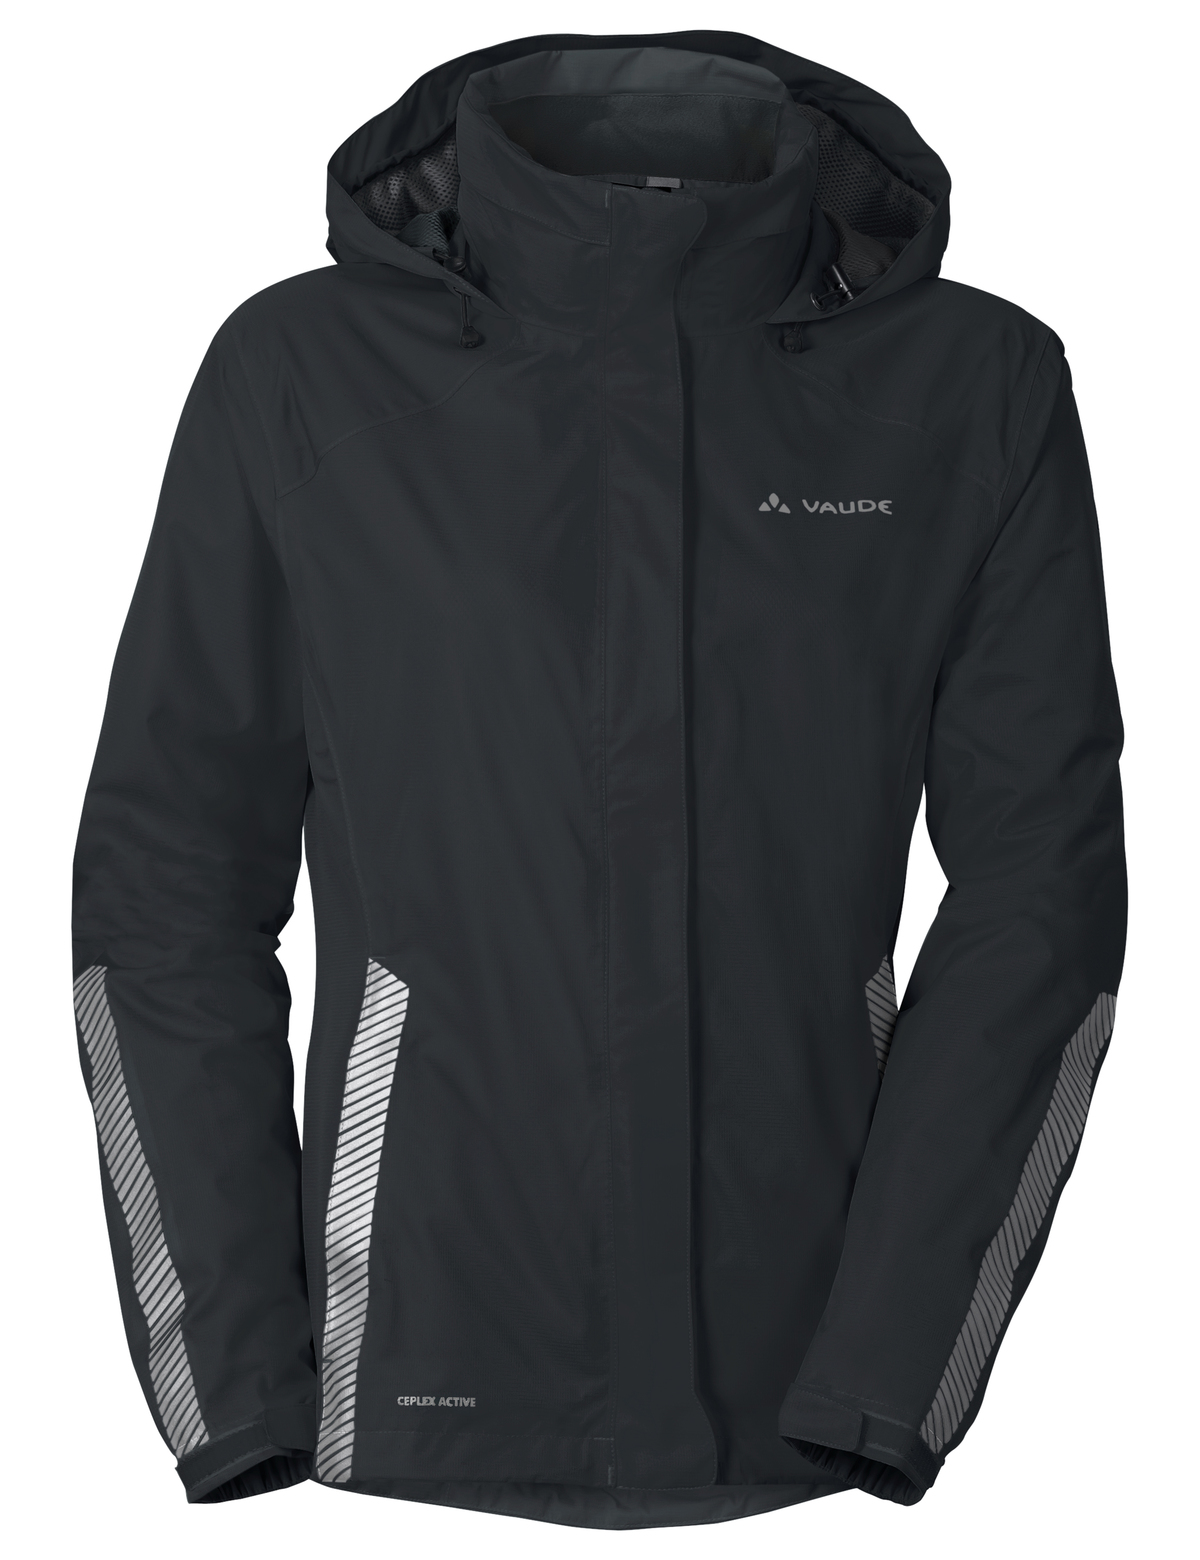 VAUDE Women´s Luminum Jacket black Größe 38 - VAUDE Women´s Luminum Jacket black Größe 38